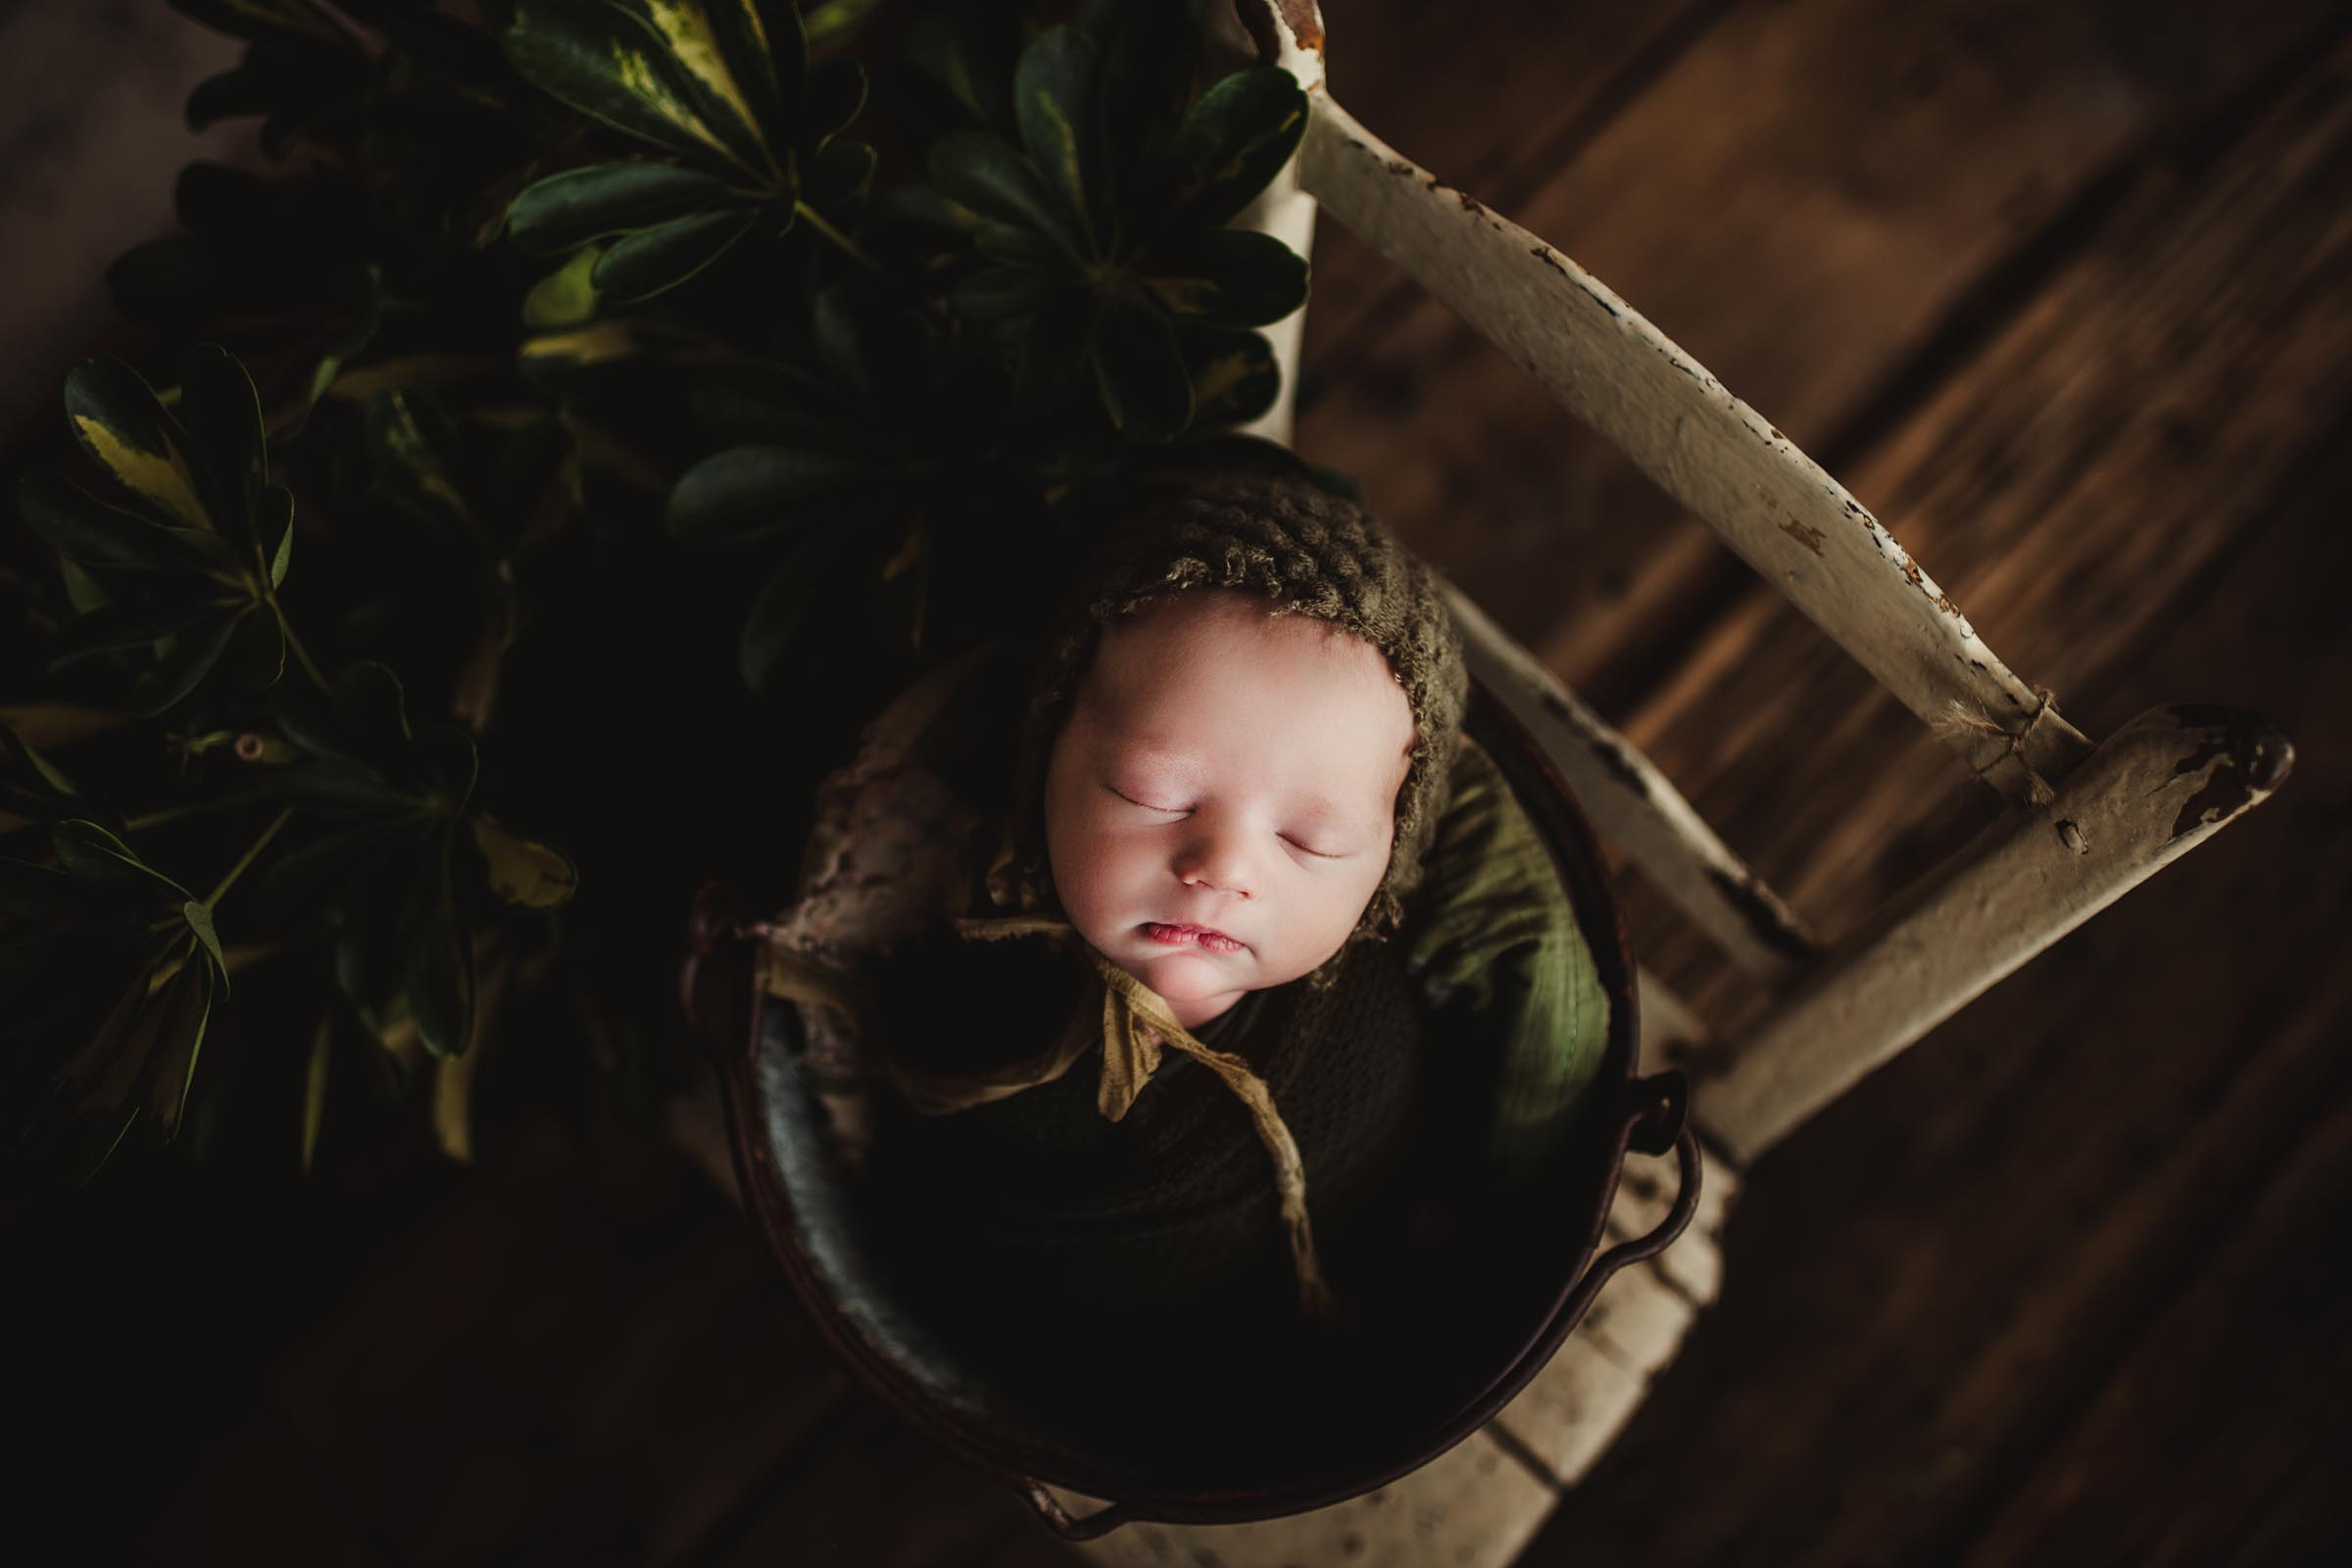 newborn baby wrapped and on a chair and bucket in studio